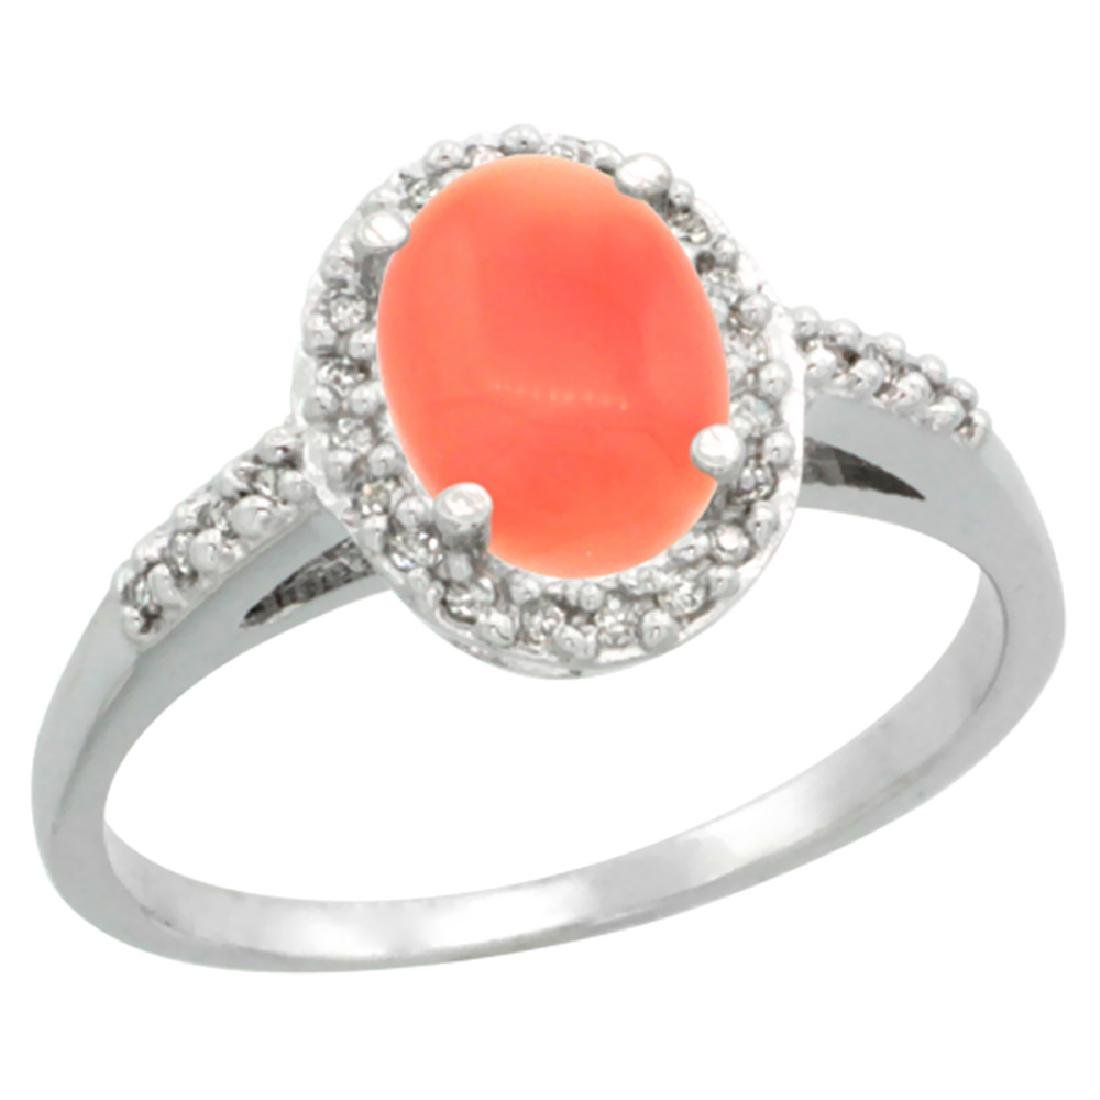 Natural 1.25 ctw Coral & Diamond Engagement Ring 10K